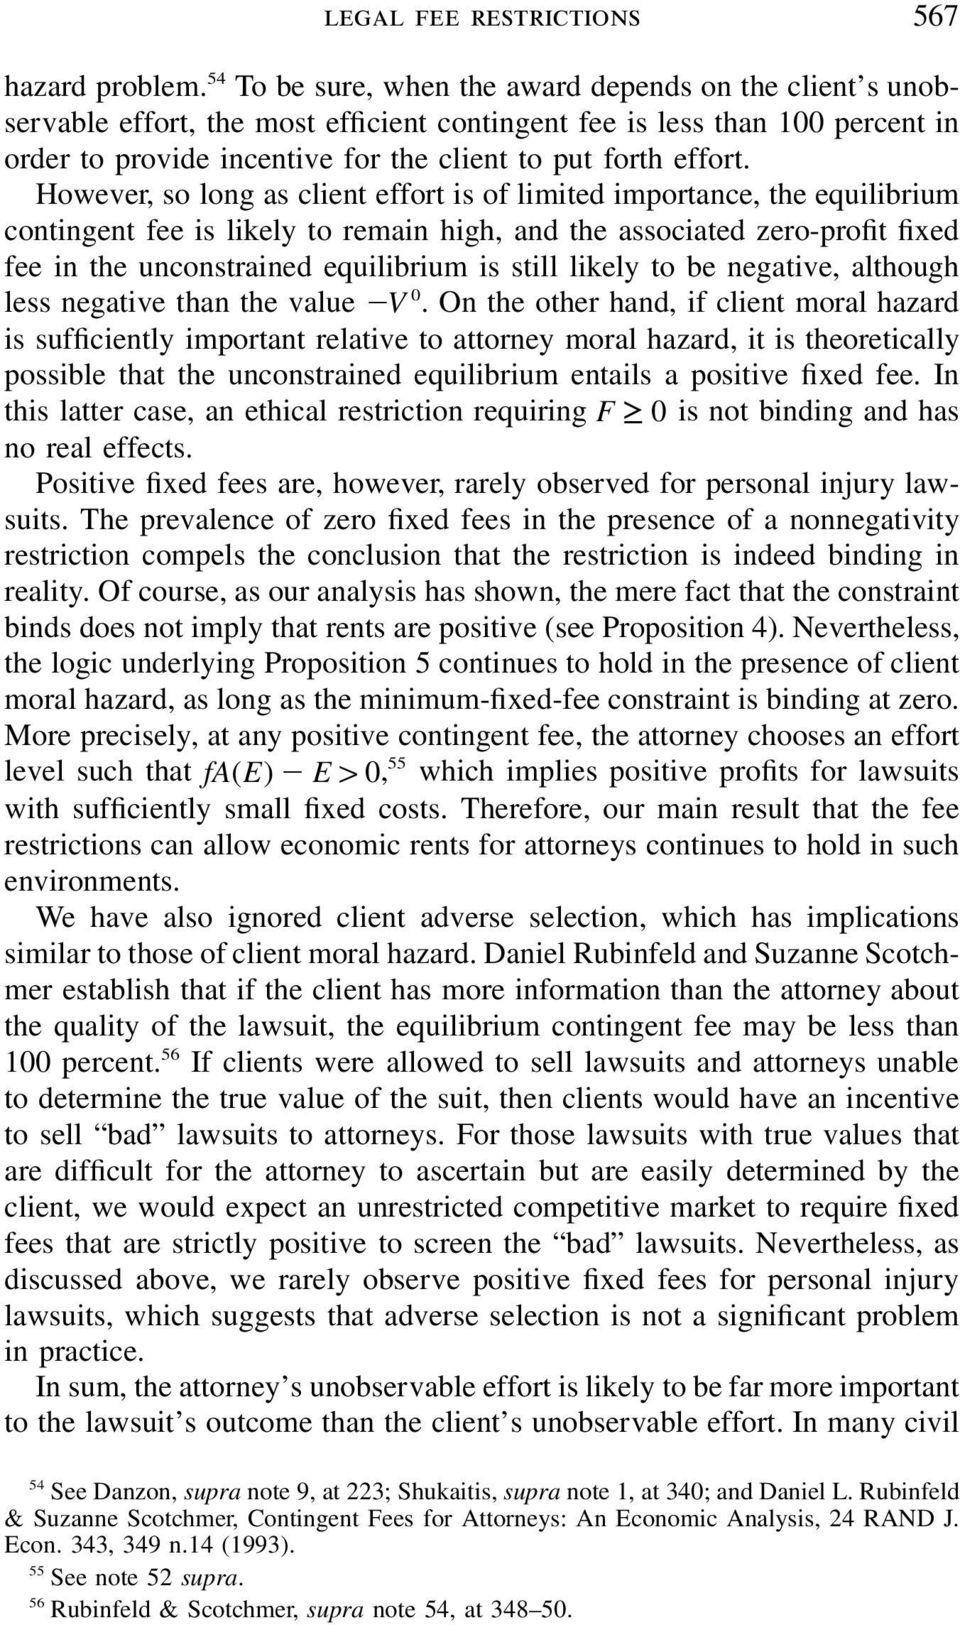 However, so long as client effort is of limited importance, the equilibrium contingent fee is likely to remain high, and the associated zero-profit fixed fee in the unconstrained equilibrium is still